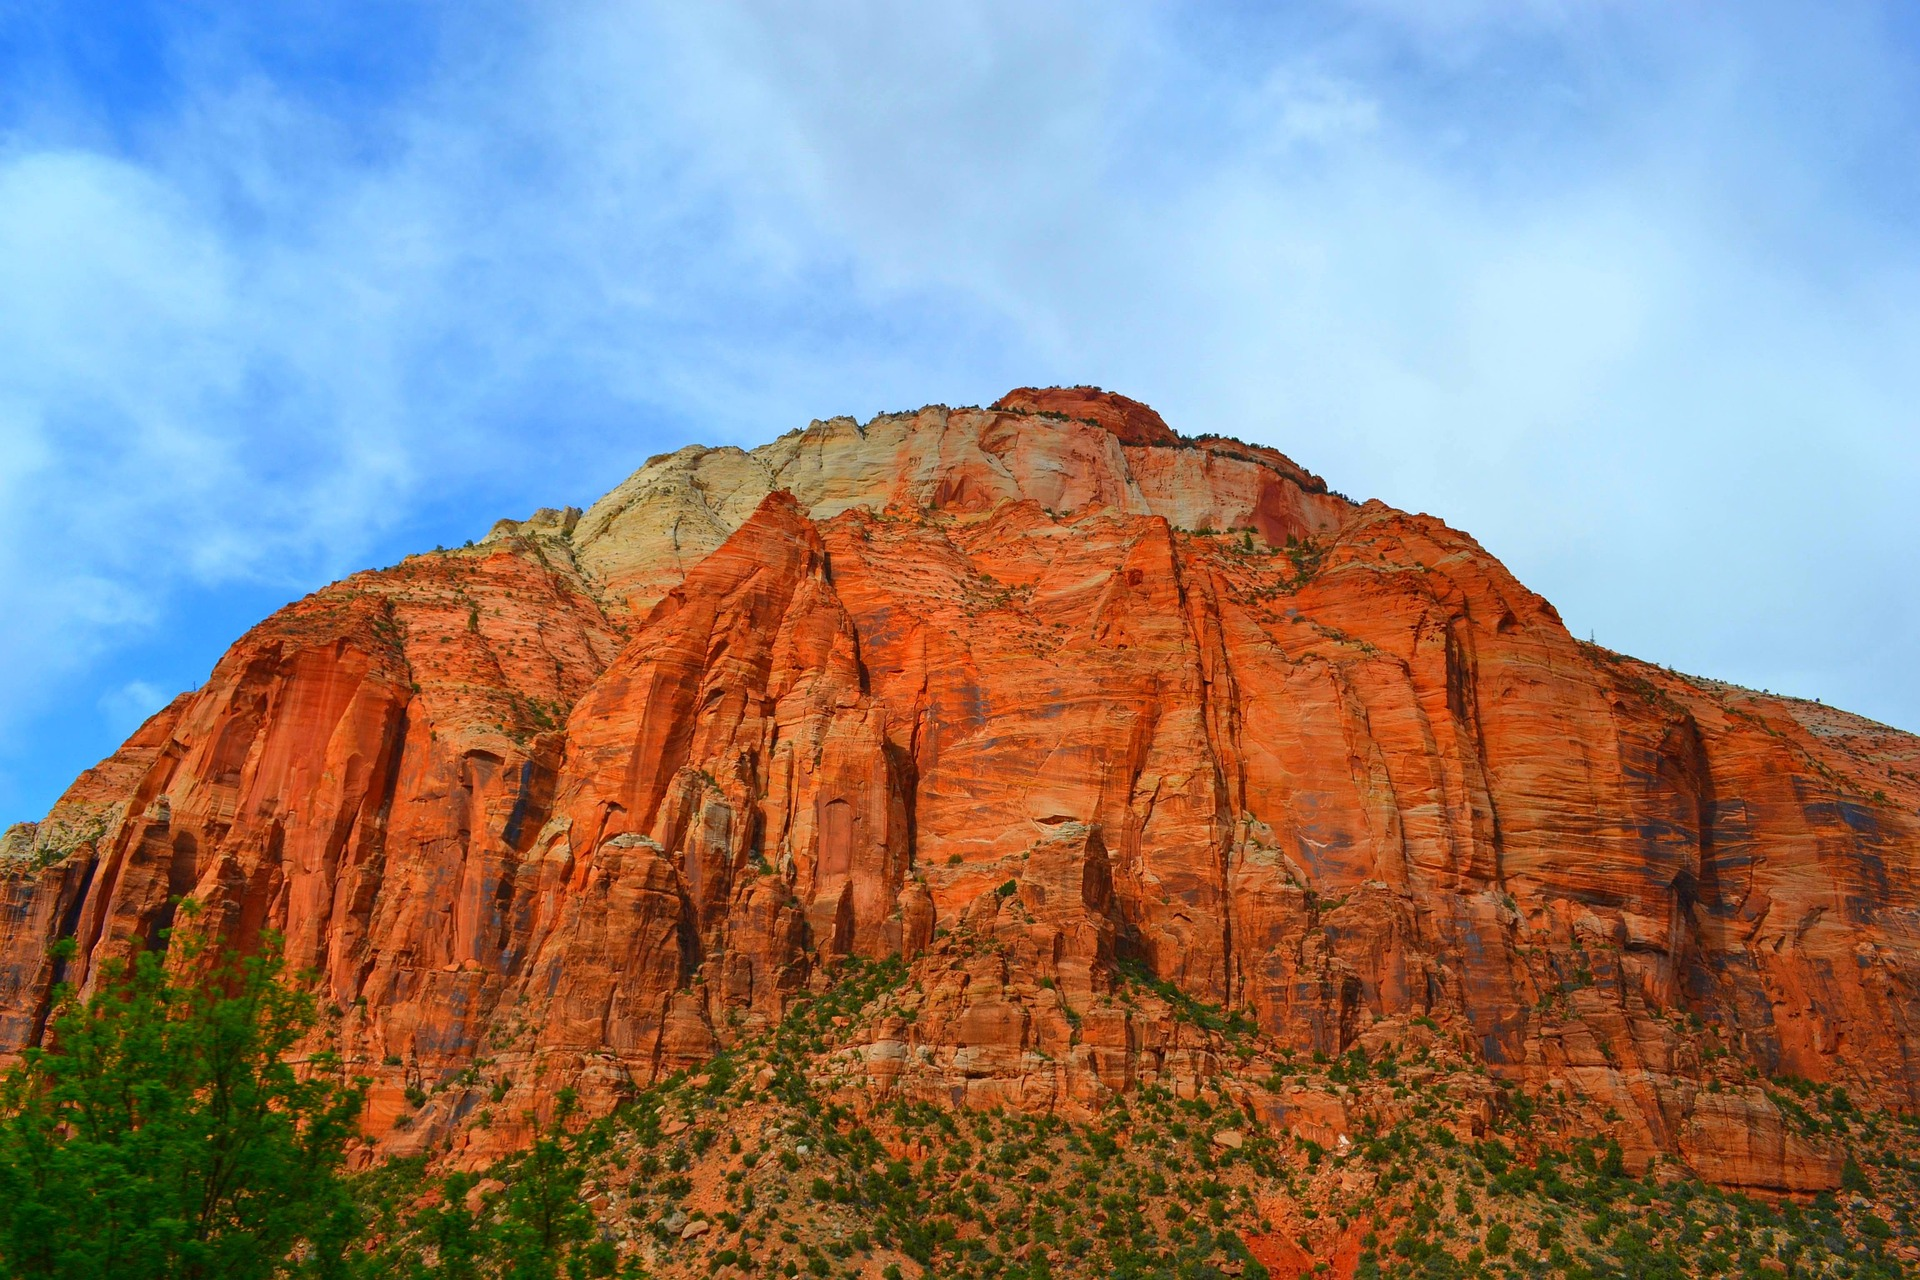 Great Places to Visit in the United States: Zion National Park